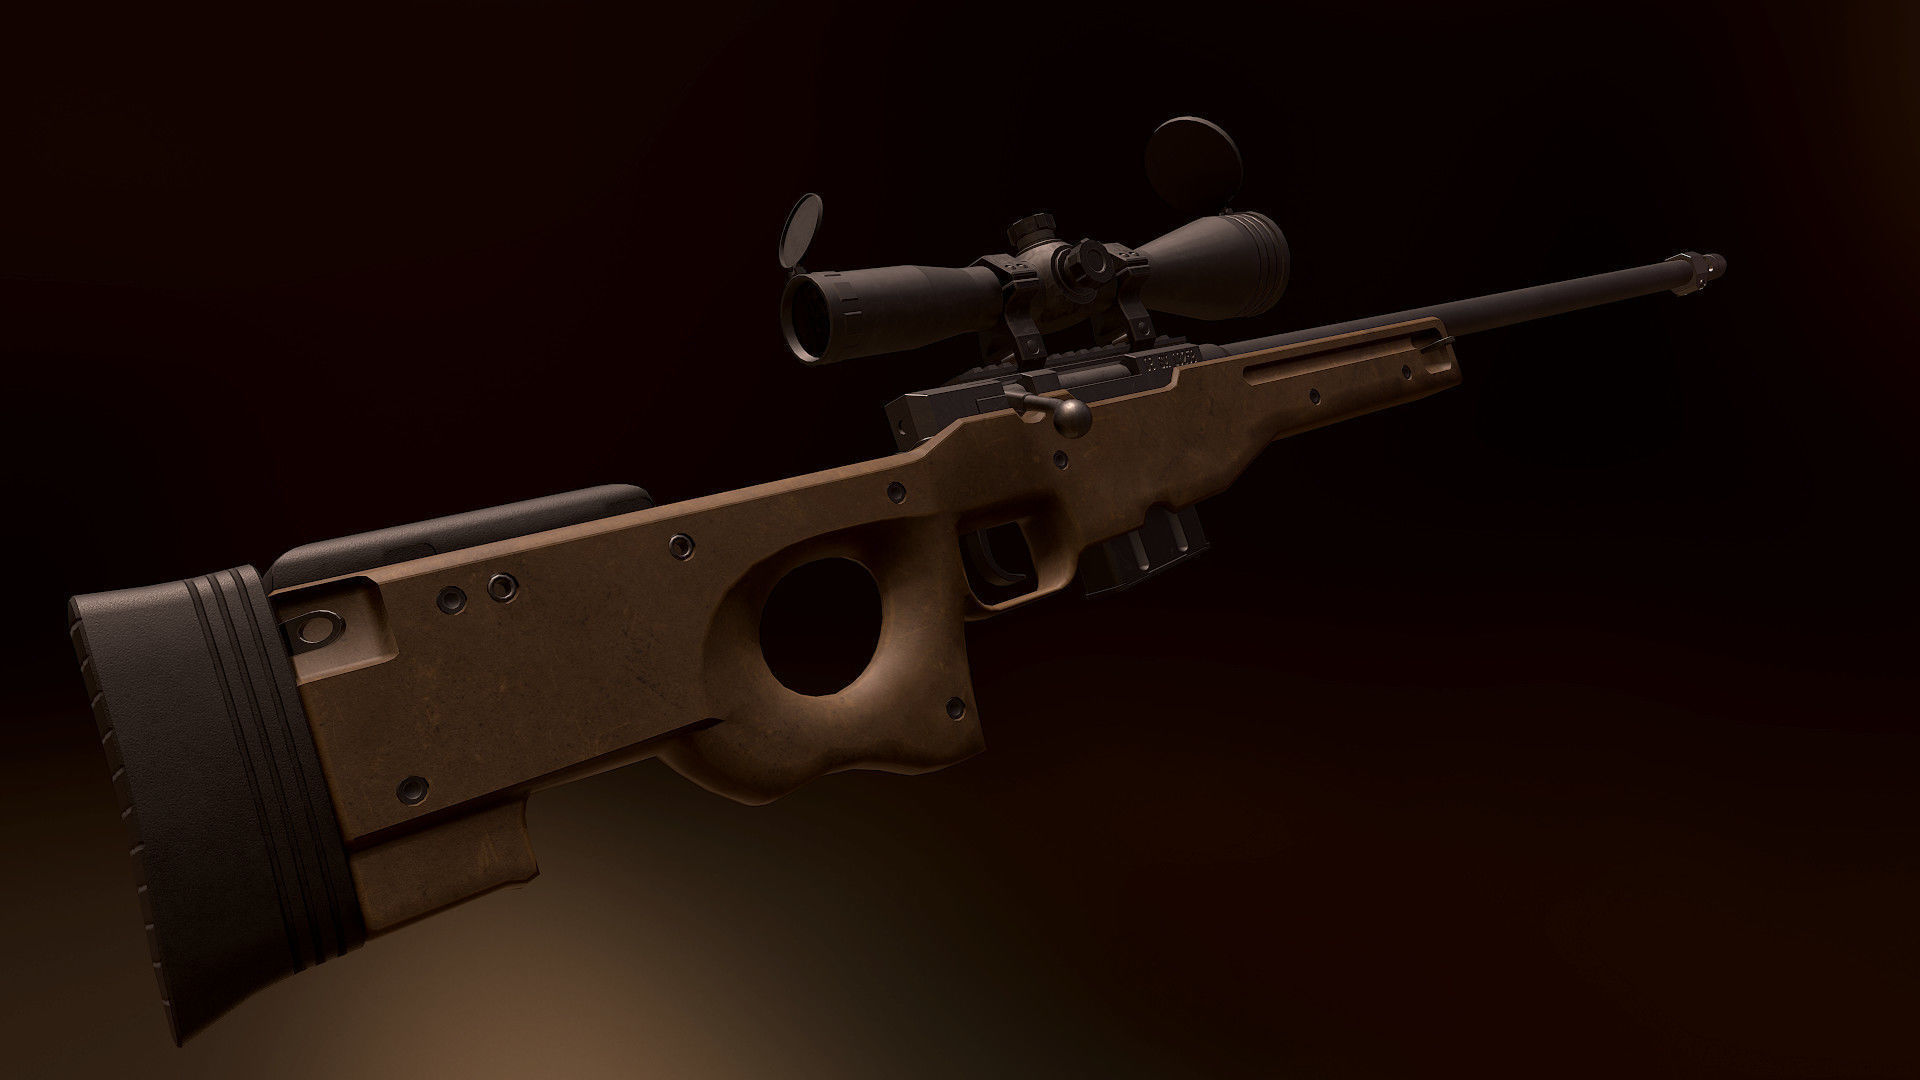 AWP - Accuracy International L96A1